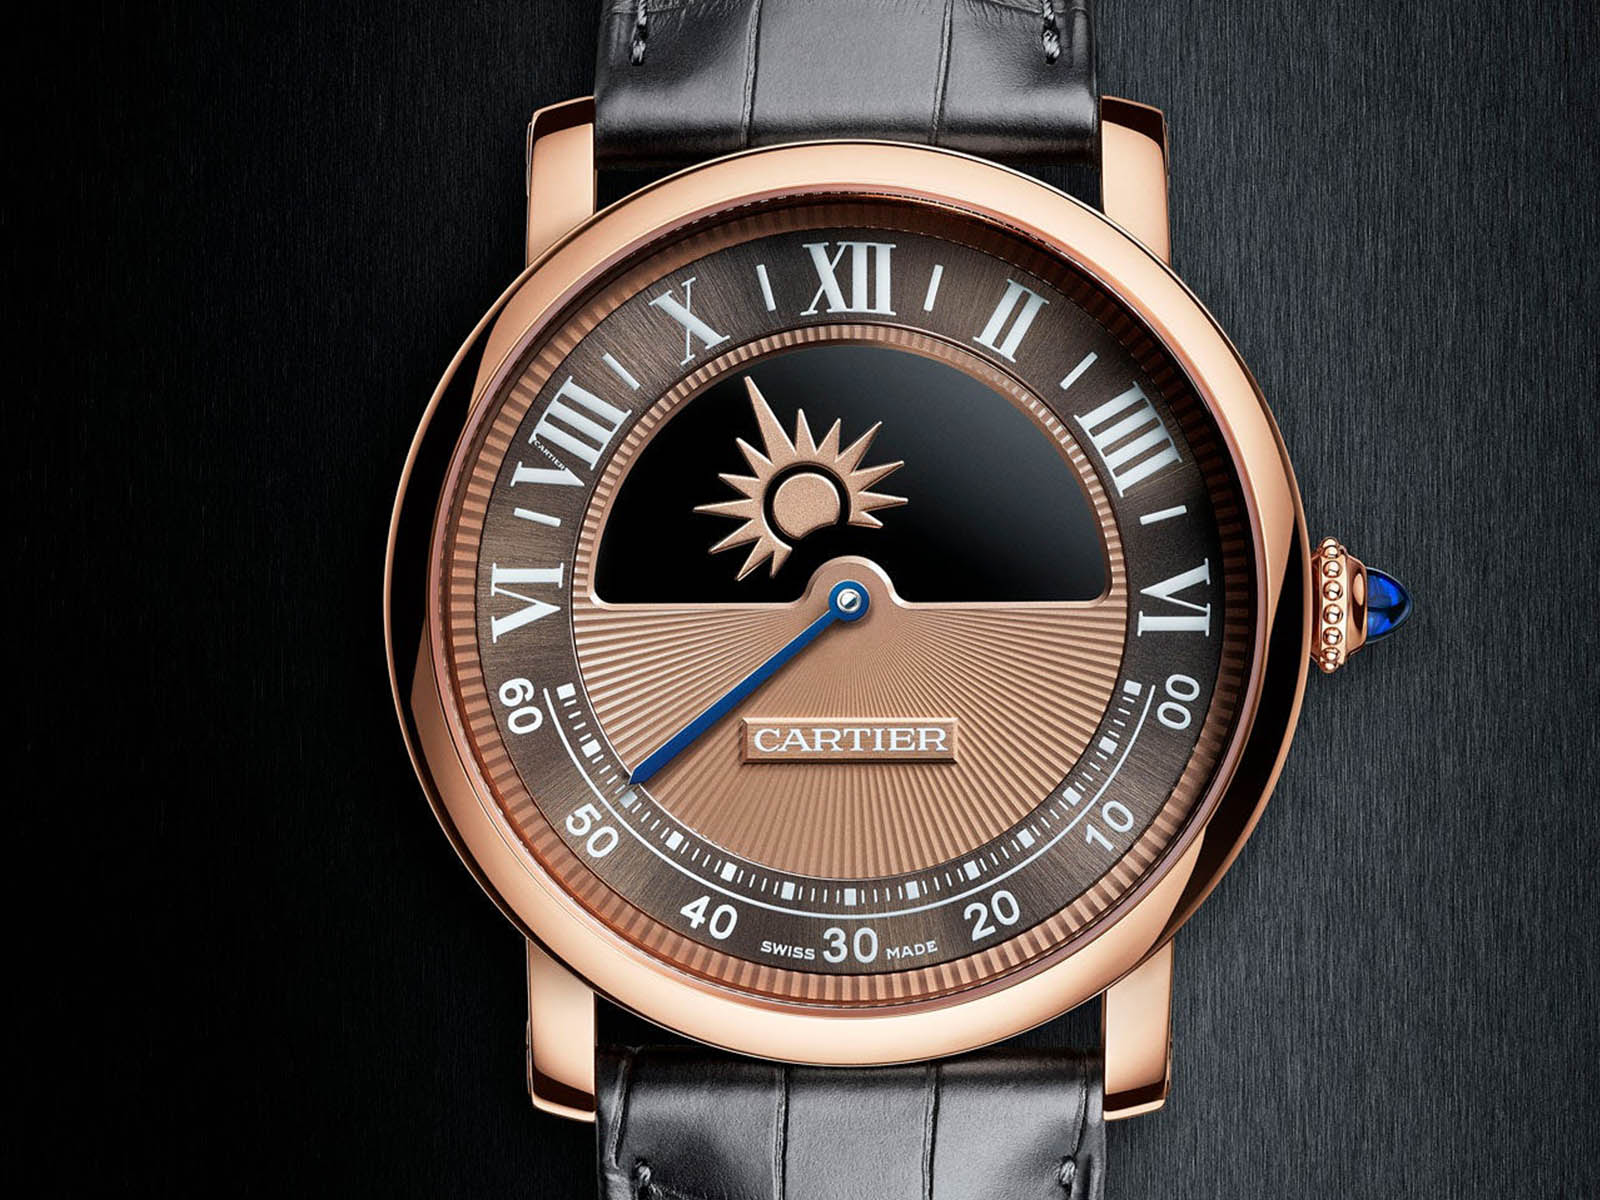 cartier-rotonde-de-cartier-mysterious-day-night-3.jpg